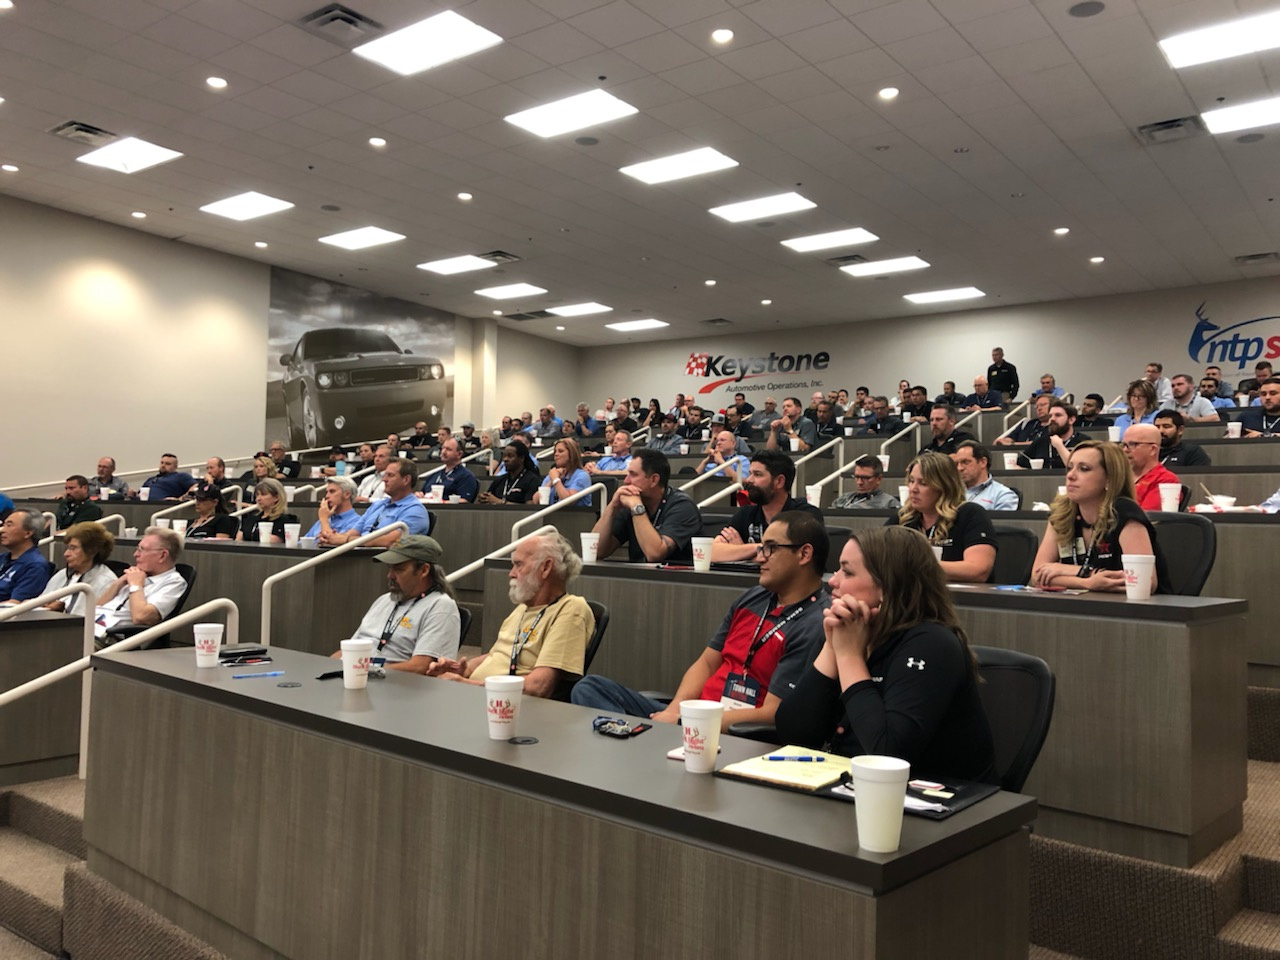 The Keystone Automotive Operations warehouse in Flower Mound, Texas hosted a SEMA Town Hall on May 7.